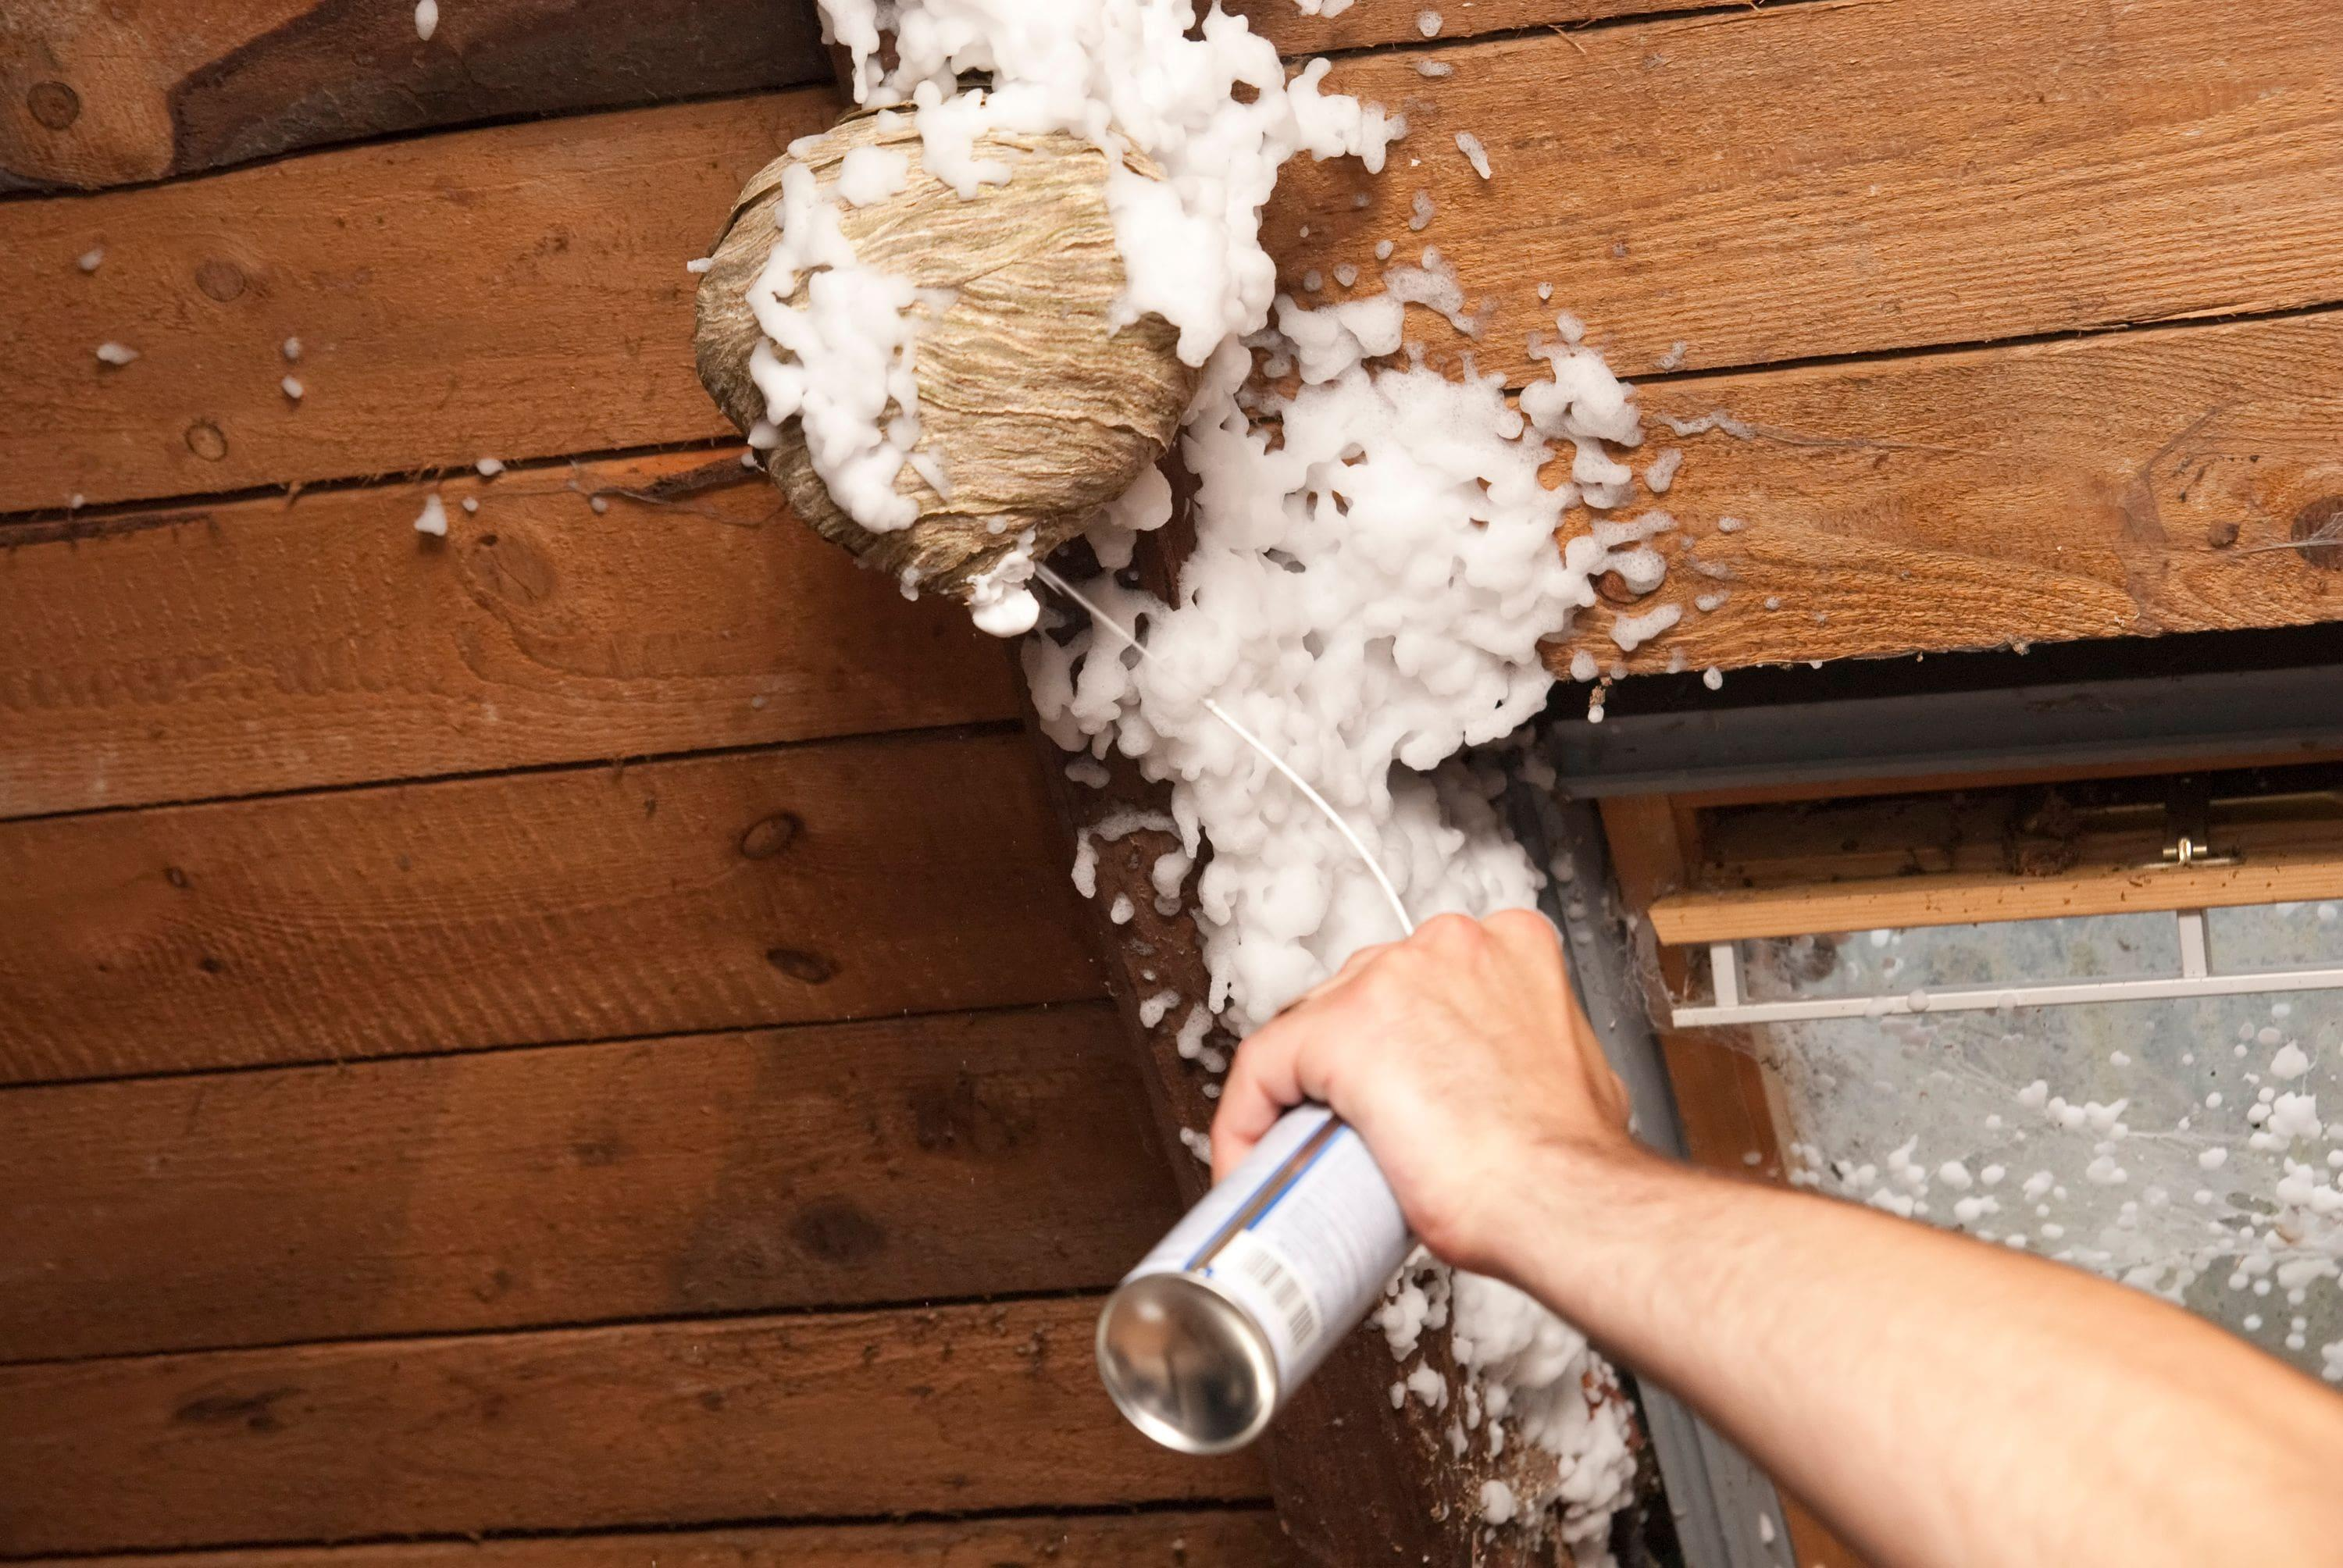 spraying a wasps nest with pesticide foam